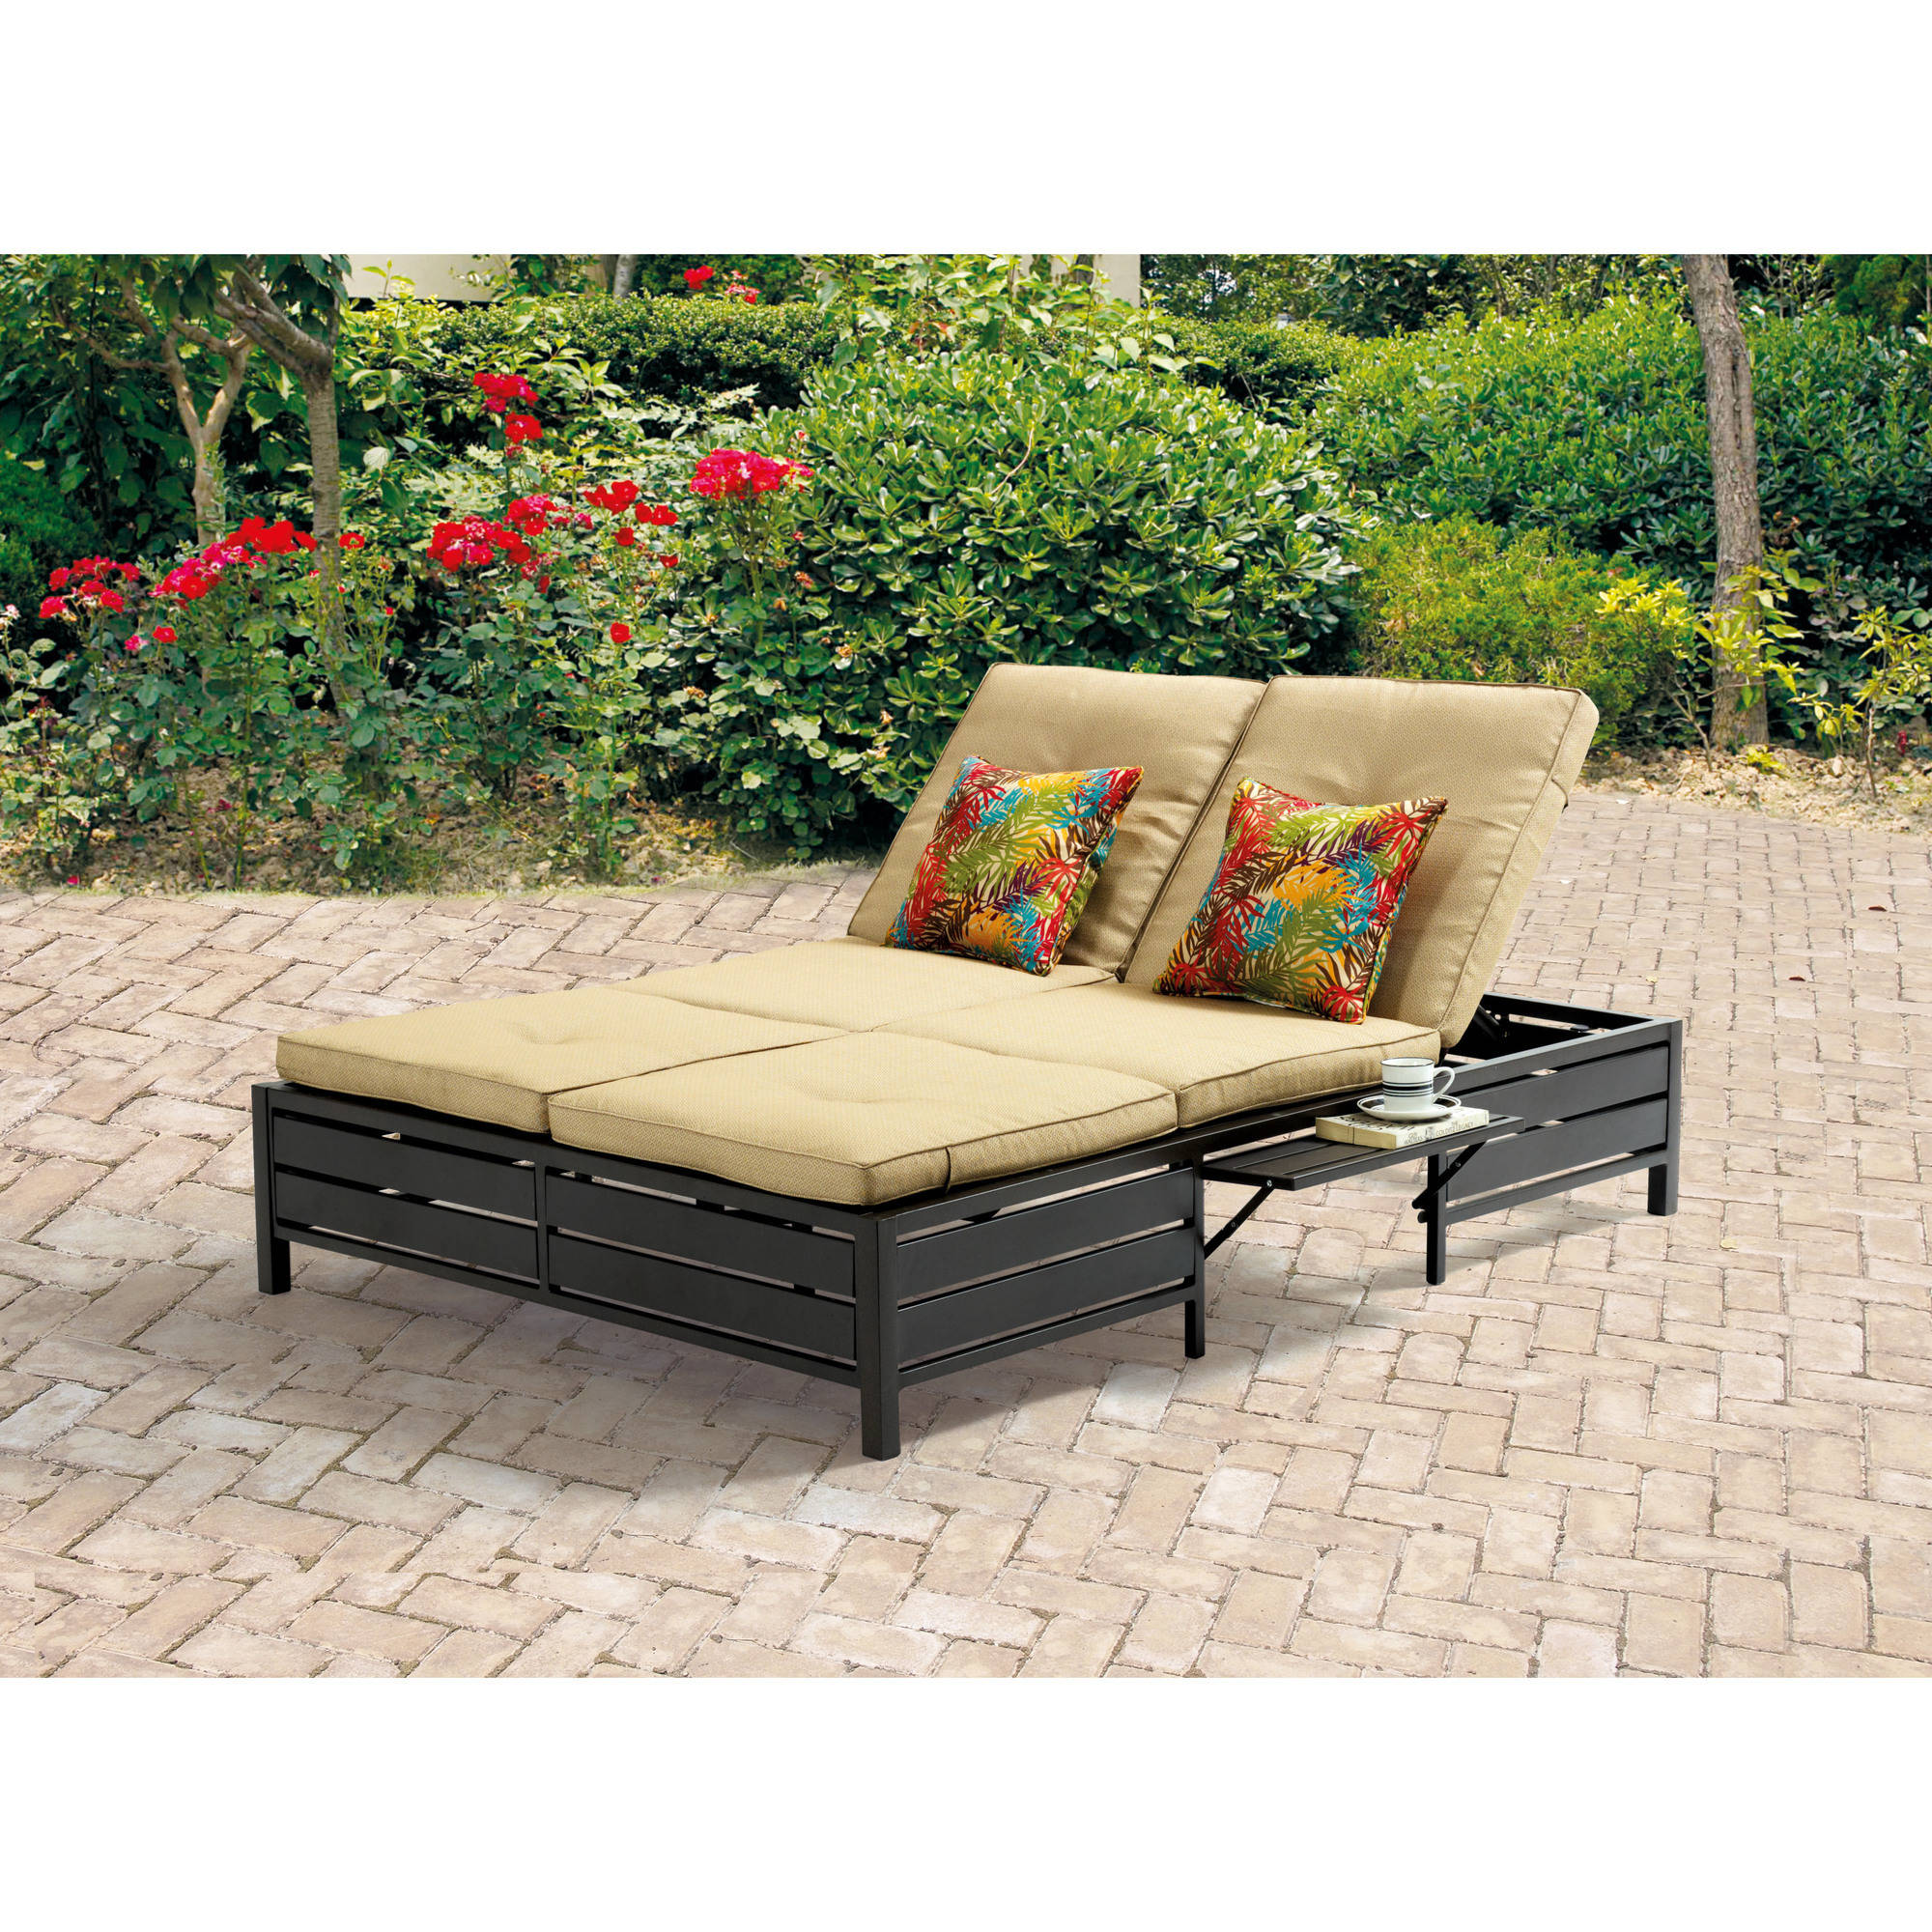 and lounge durable clearance cushions folding picture outdoor chaise sensational double concept comfortable chairs